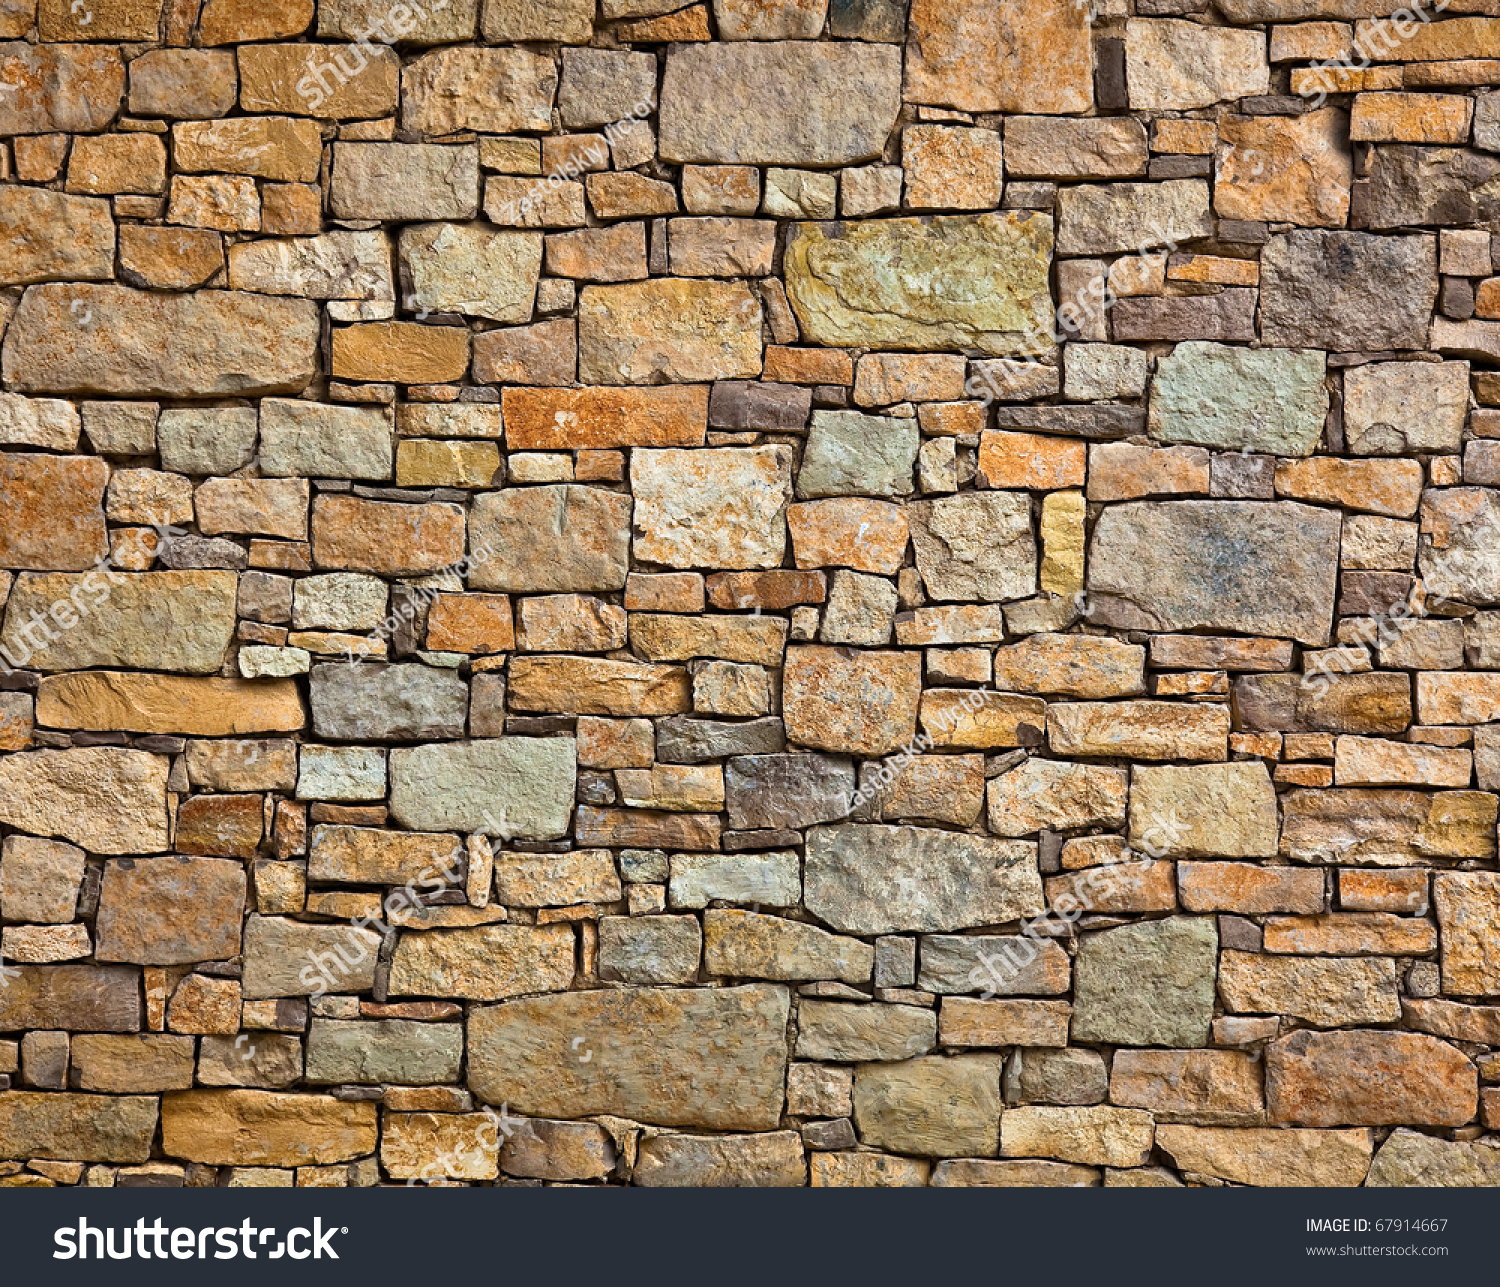 Stone Wall Texture : Background stone wall texture photo stock